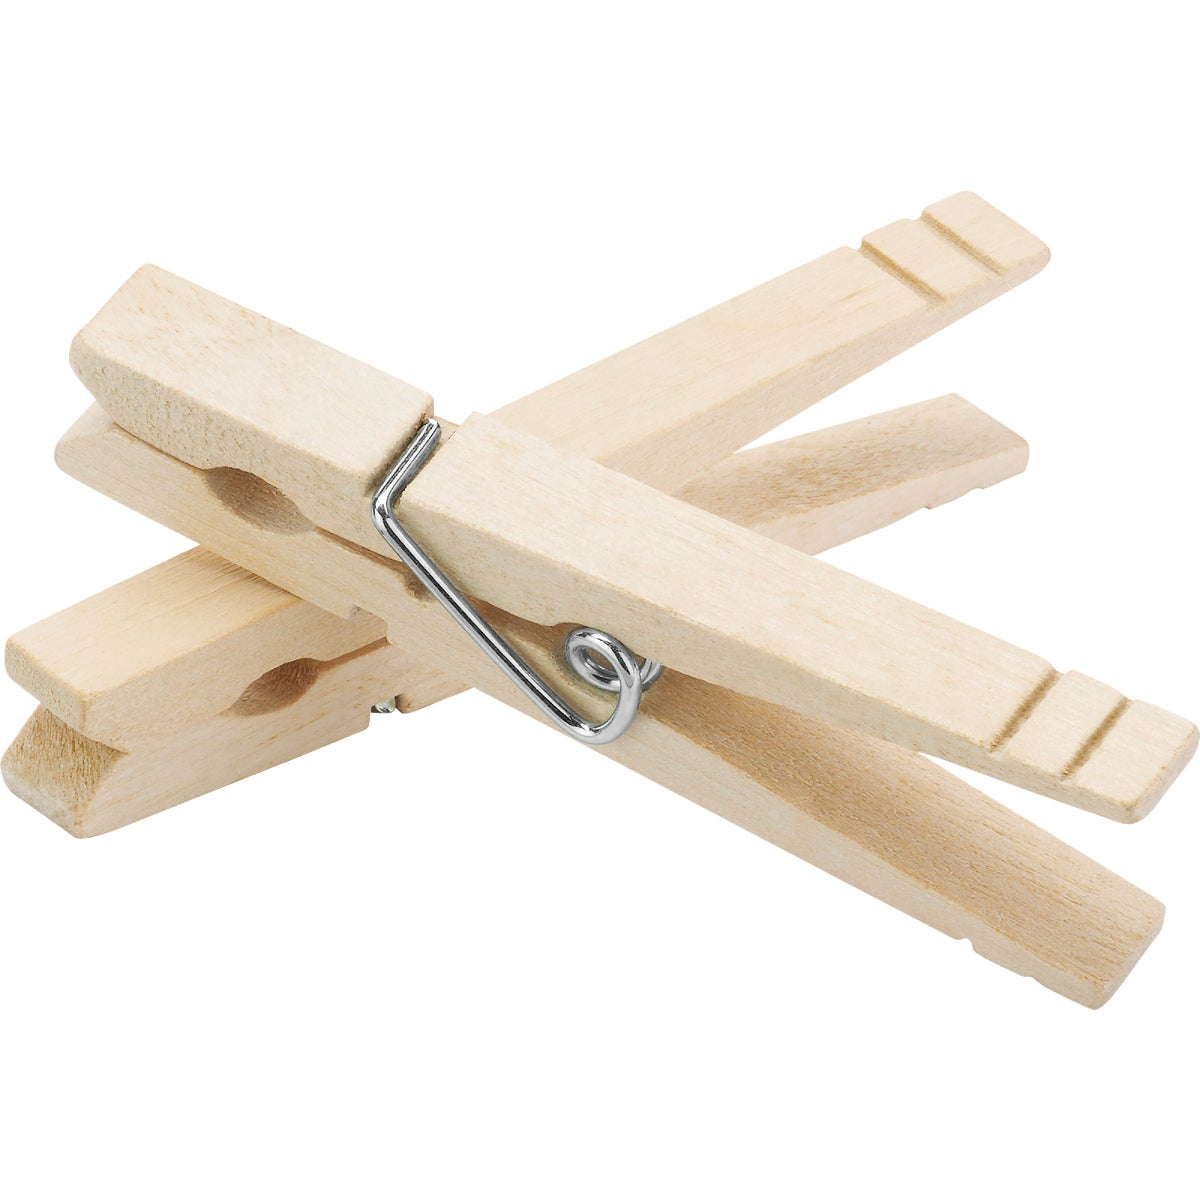 WOODEN SPRING CLOTHESPIN - 1220067 by Homz  Seymour